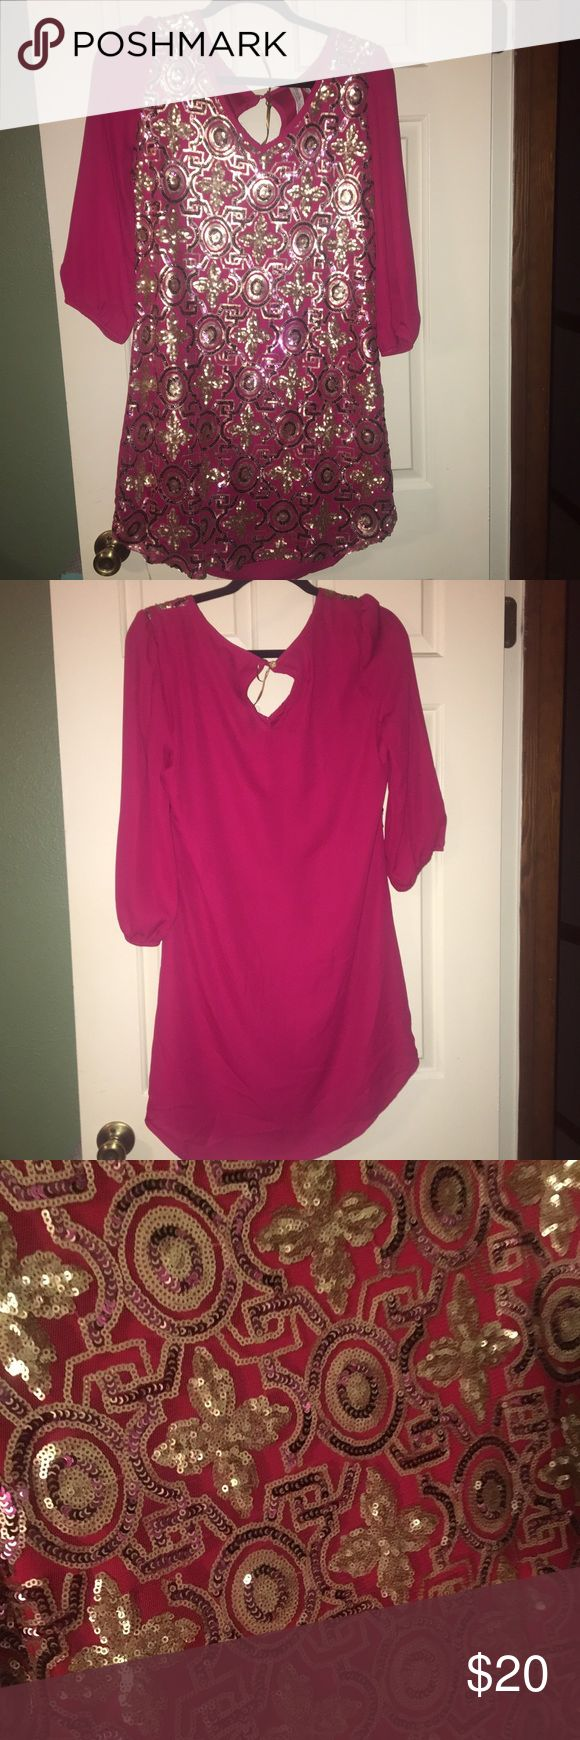 Boutique style wine colored dress This is a beautiful boutique style dress. It is a wine/burgundy color with a gorgeous gold design on the front. Only worn once. Pink Owl Dresses